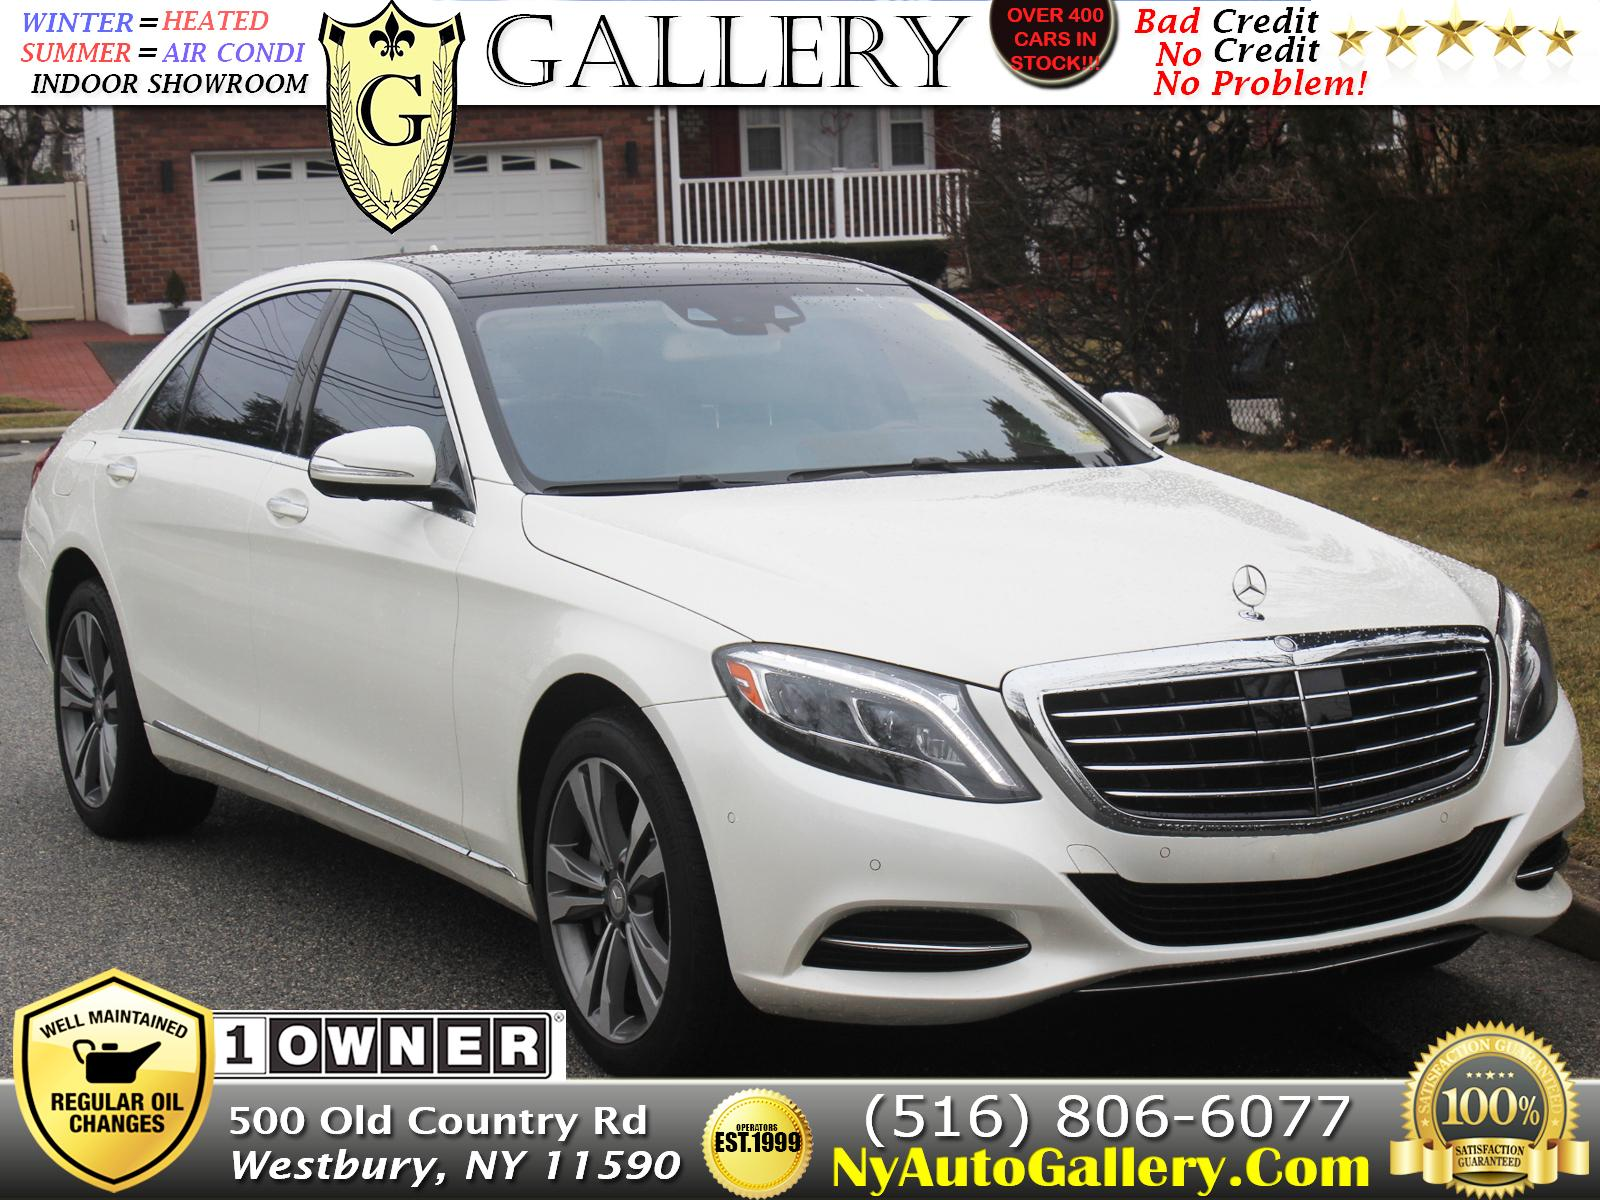 Used Mercedes-Benz S-Class For Sale New York, NY - CarGurus